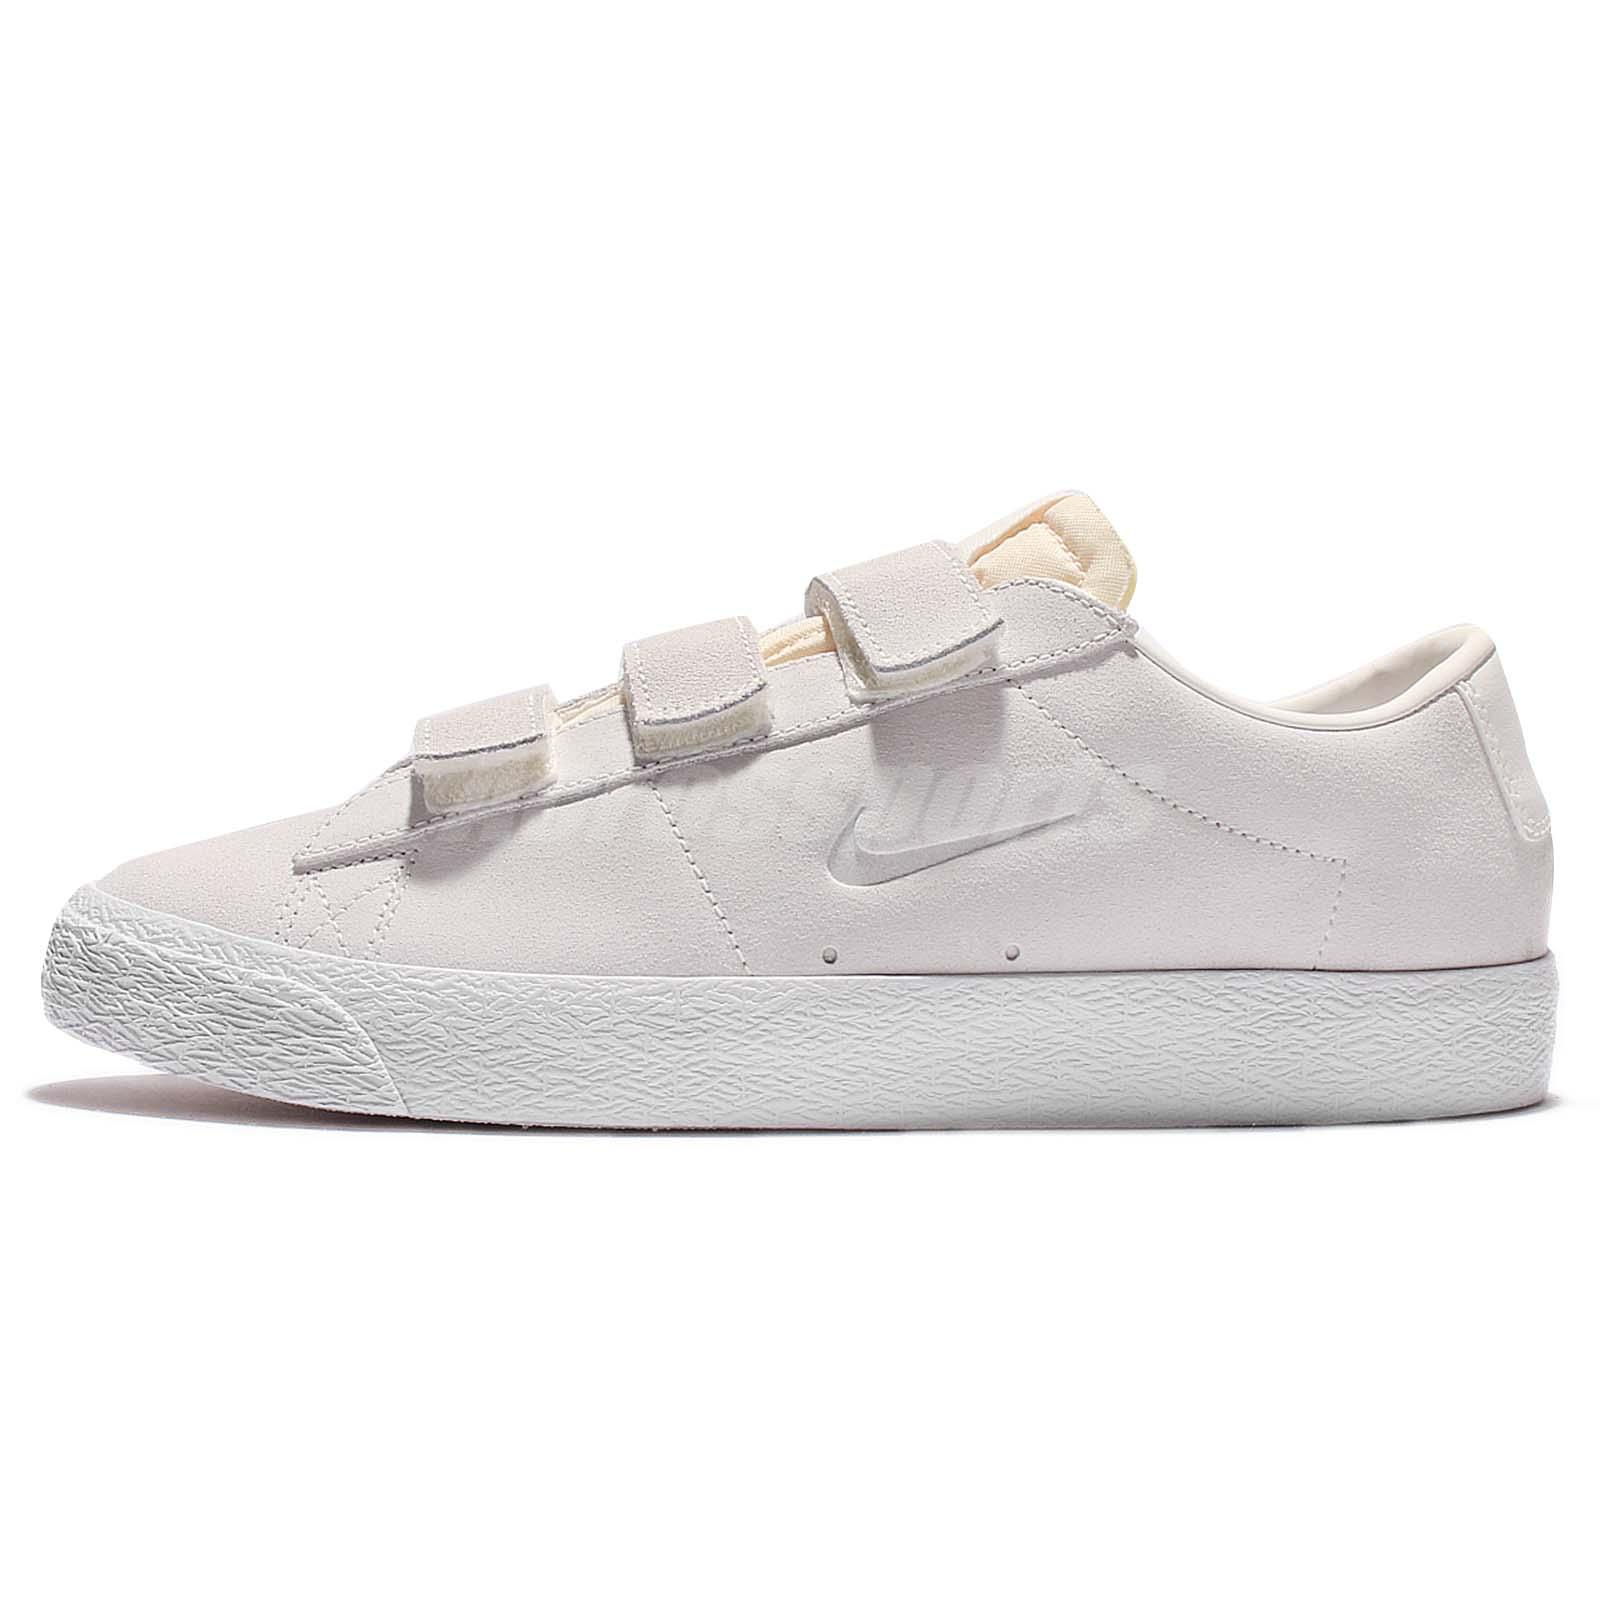 Numbers x Nike SB Zoom Blazer Low AC QS Sail Homme Skateboarding Chaussures